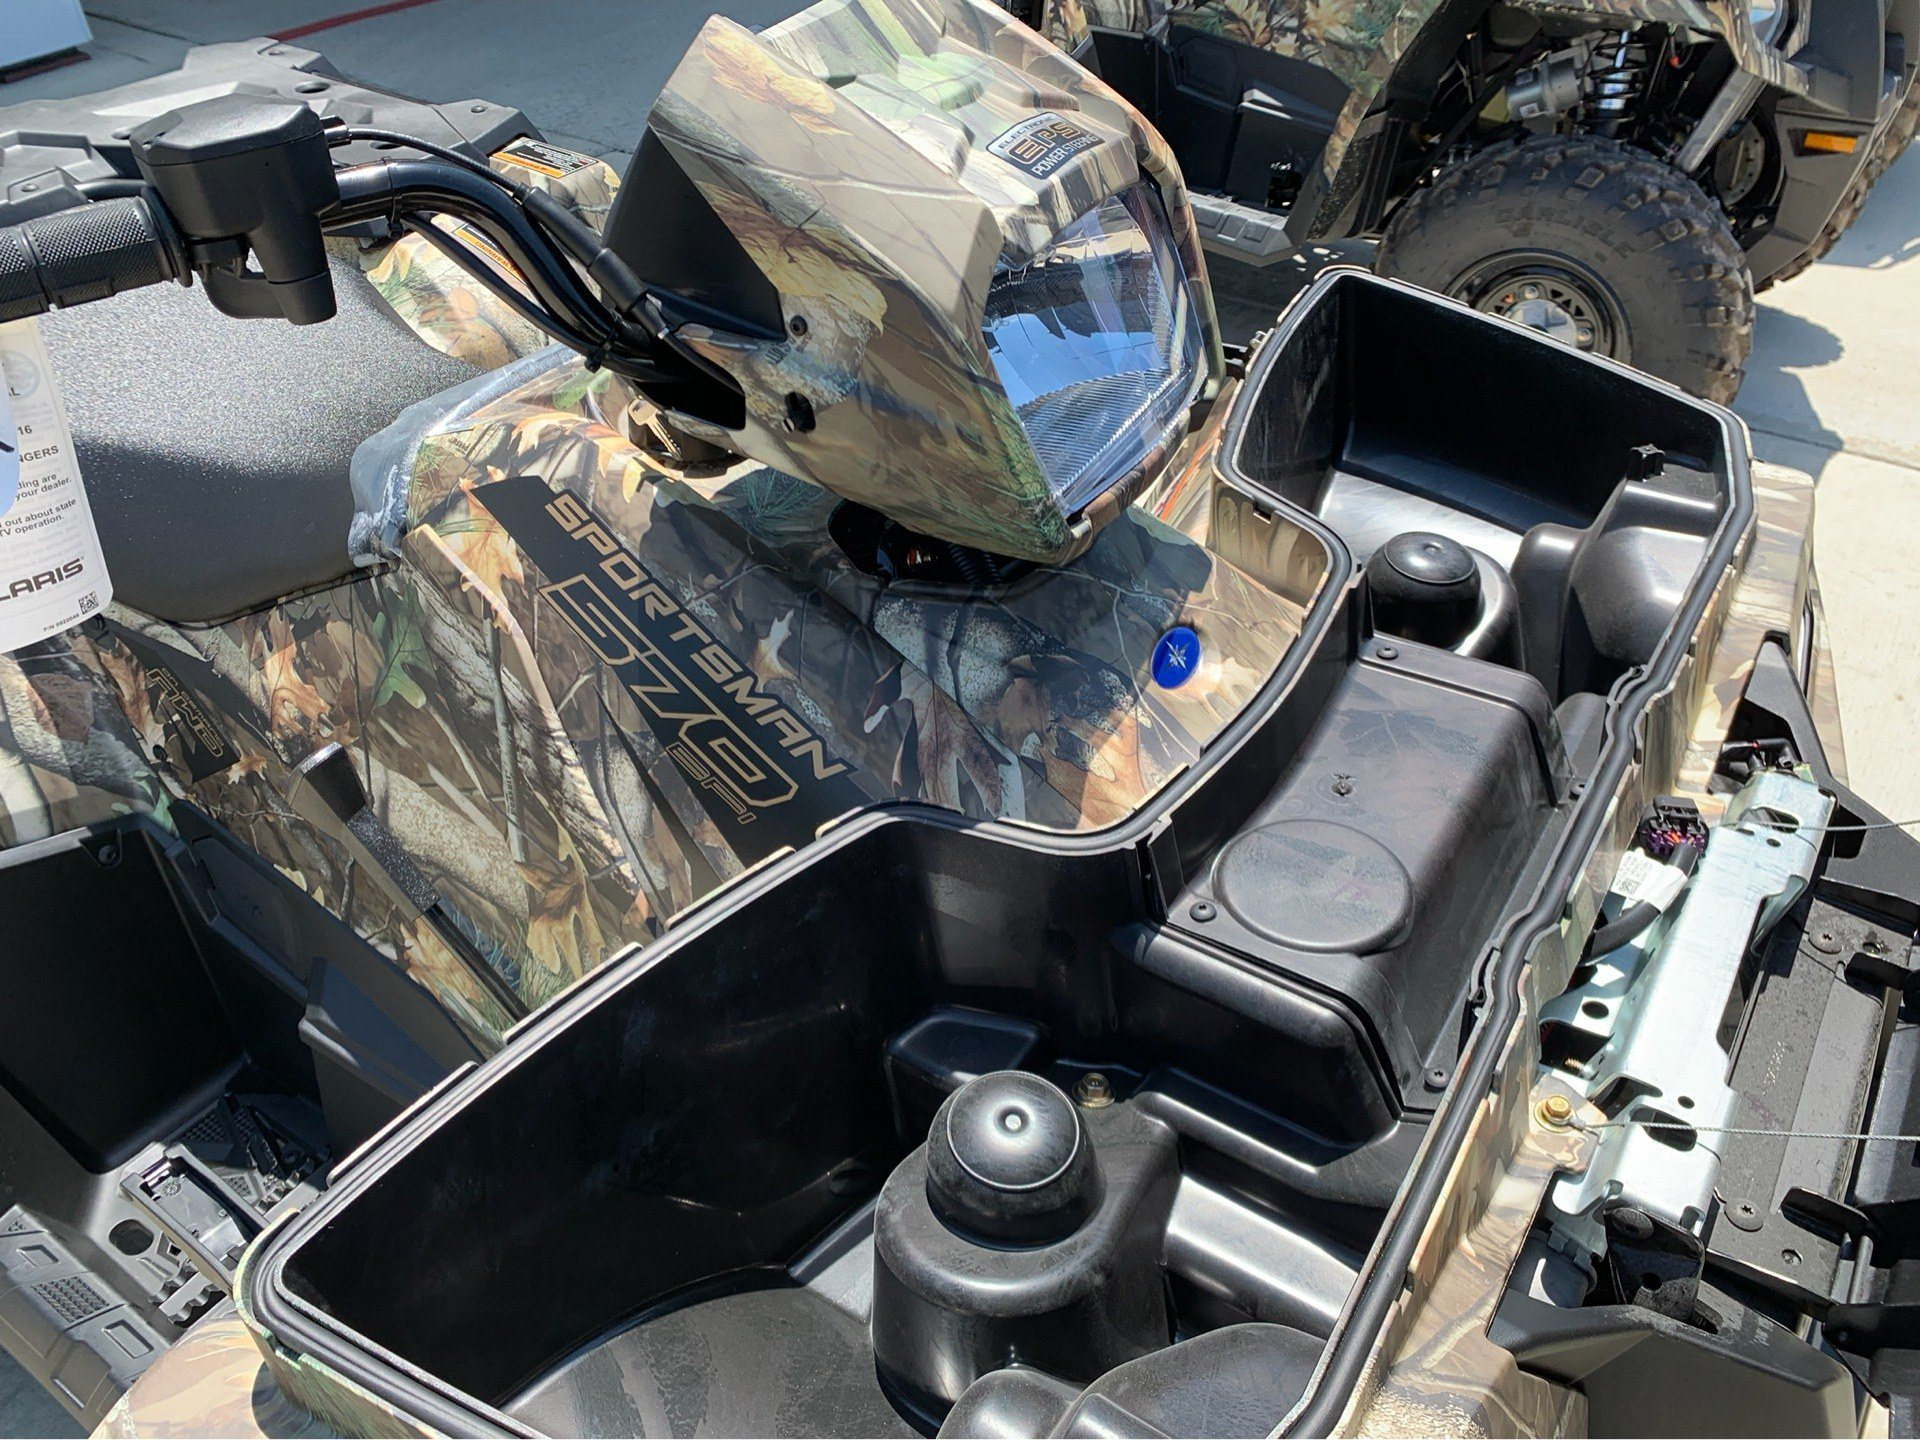 2018 Polaris Sportsman 570 EPS Camo in Marshall, Texas - Photo 8